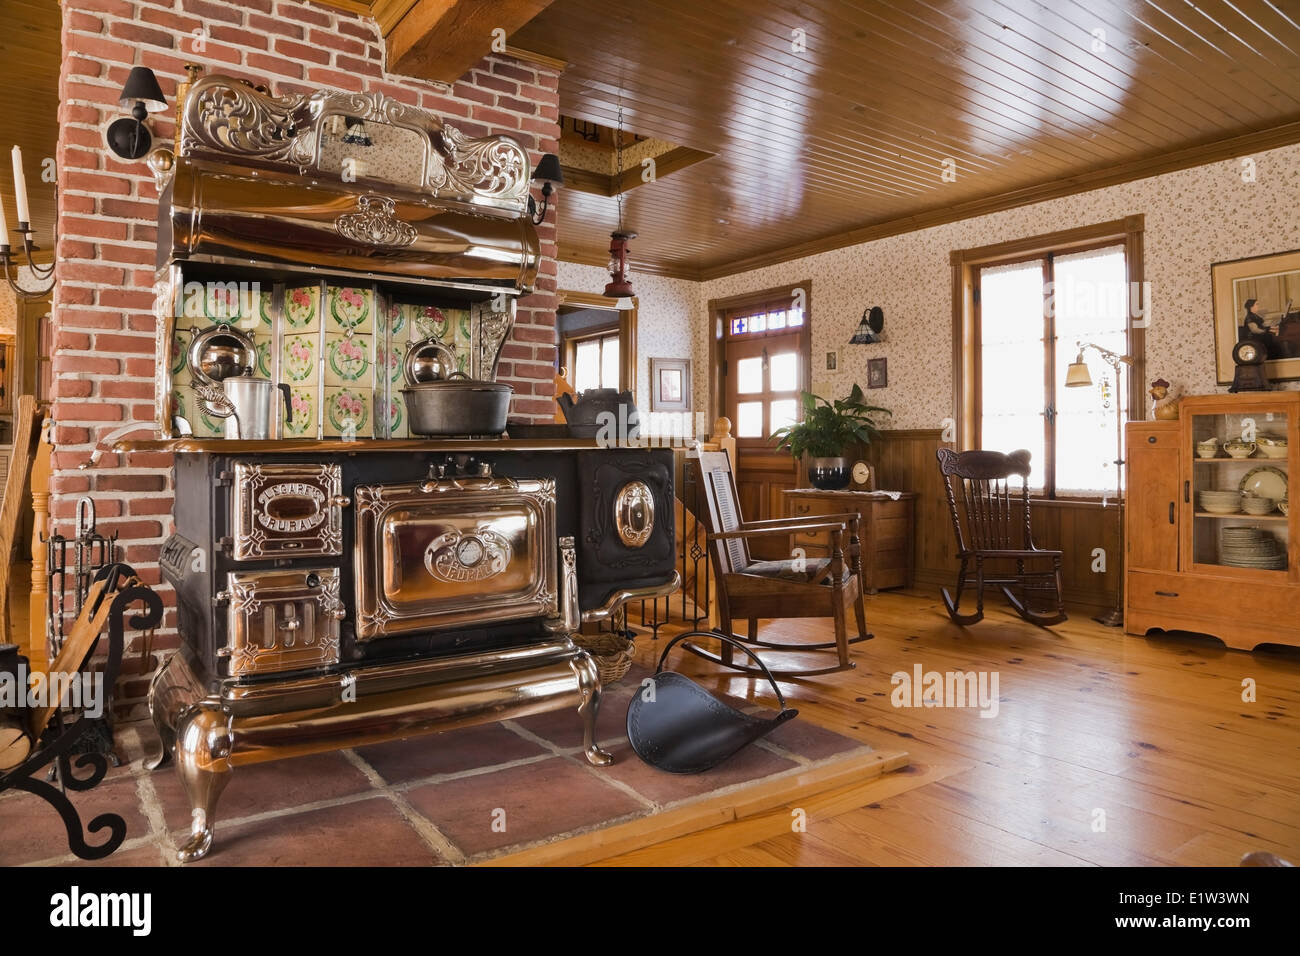 living room designs with wood stove furniture in pakistan old legare s rural antique the a canadiana cottage style fieldstone residential home built to look